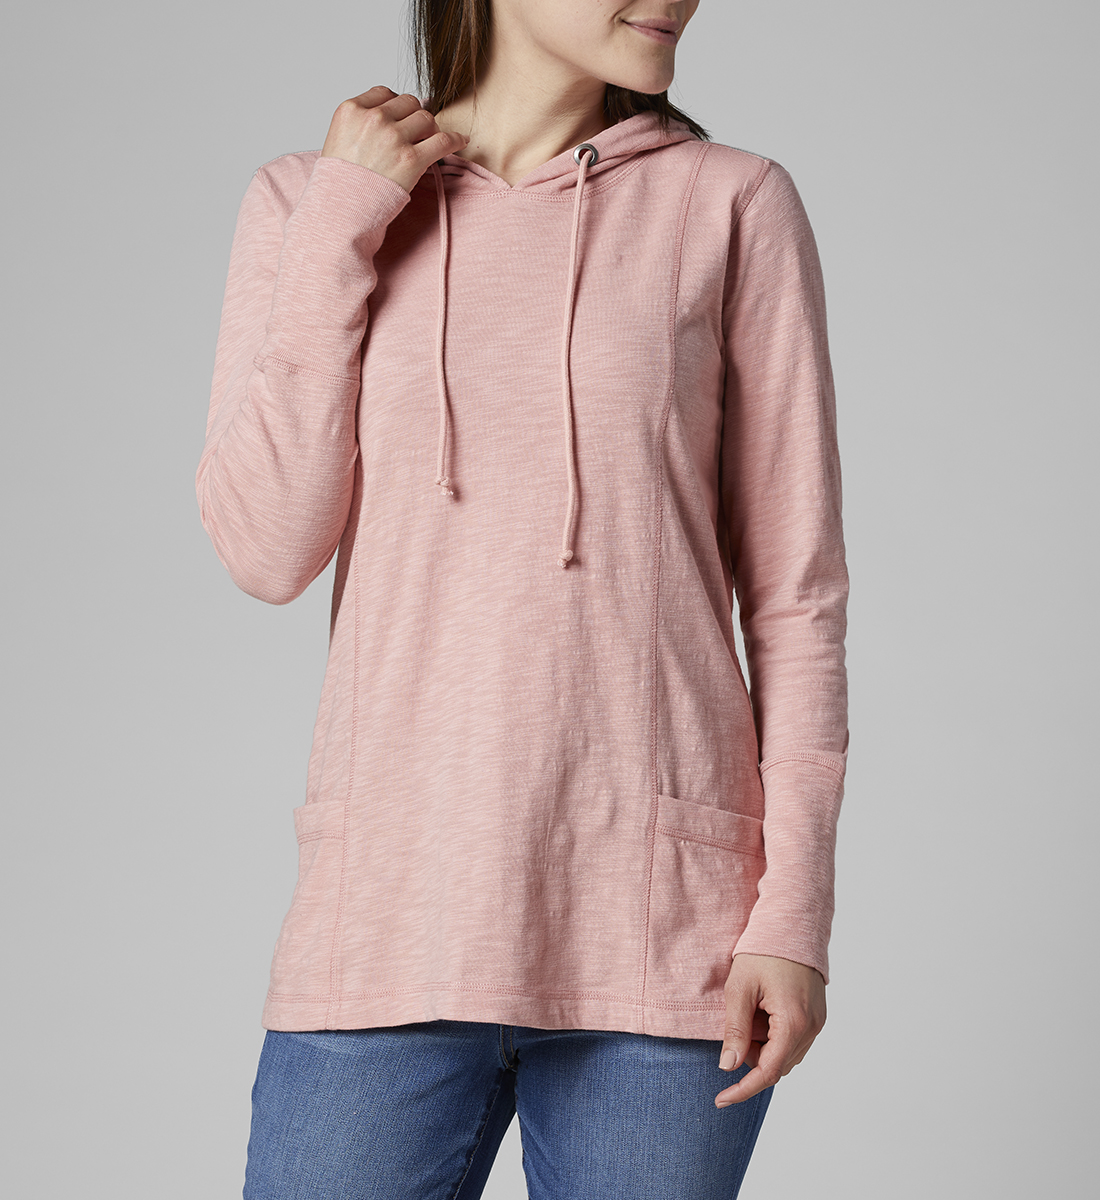 Gemma Hooded Tunic, Coral Blush, hi-res